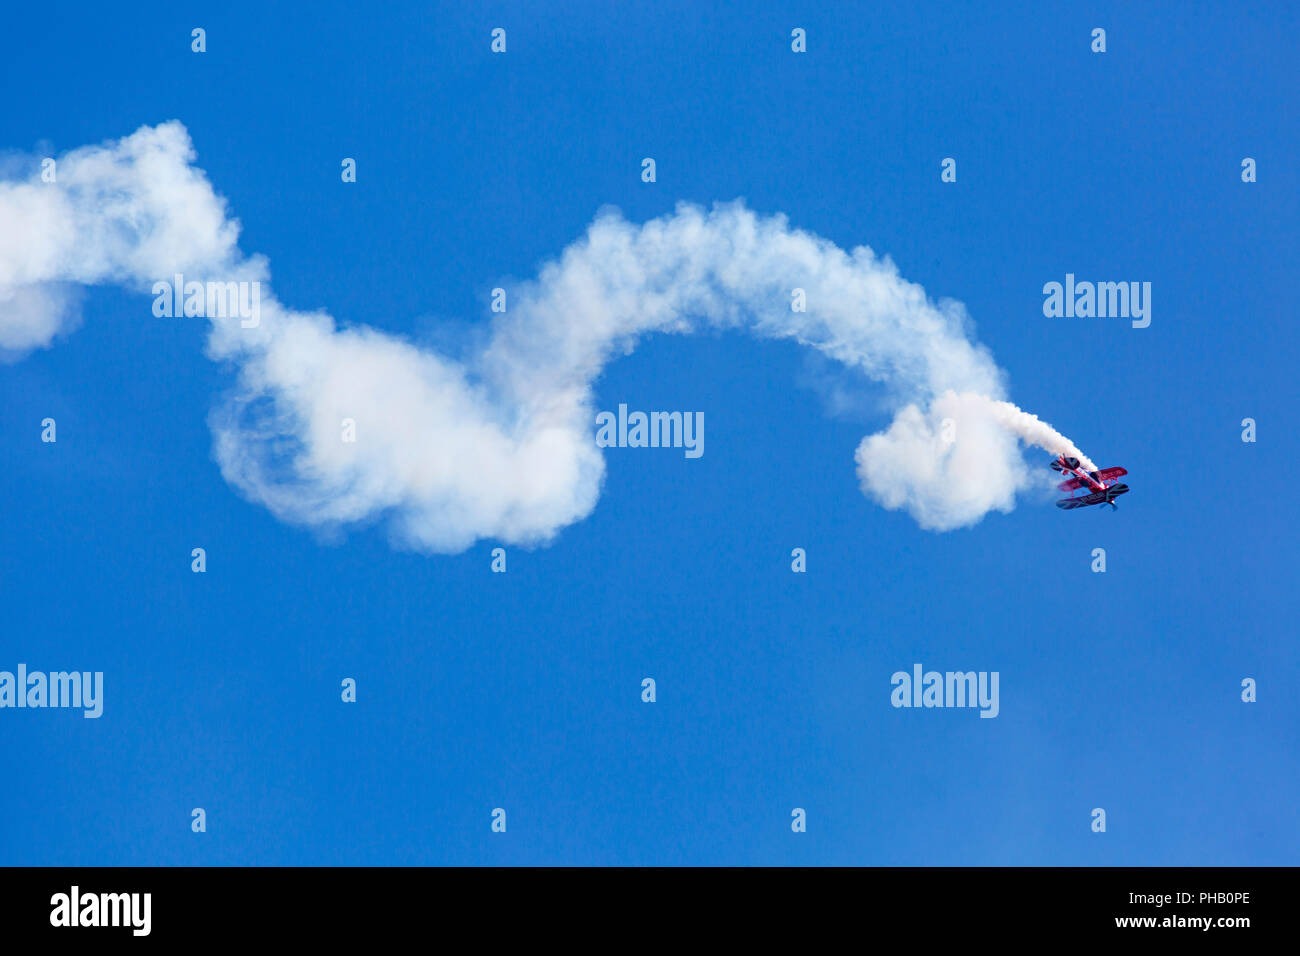 Bournemouth, UK. 31st August 2018. Crowds flock to Bournemouth for the 2nd day of the 11th annual Bournemouth Air Festival. A first for Bournemouth Air Festival, pilot Rich Goodwin showcases the Muscle Biplane Pitts SaS G-EWIZ combining aerial manoeuvres and high energy muscle biplane. Credit: Carolyn Jenkins/Alamy Live News - Stock Image